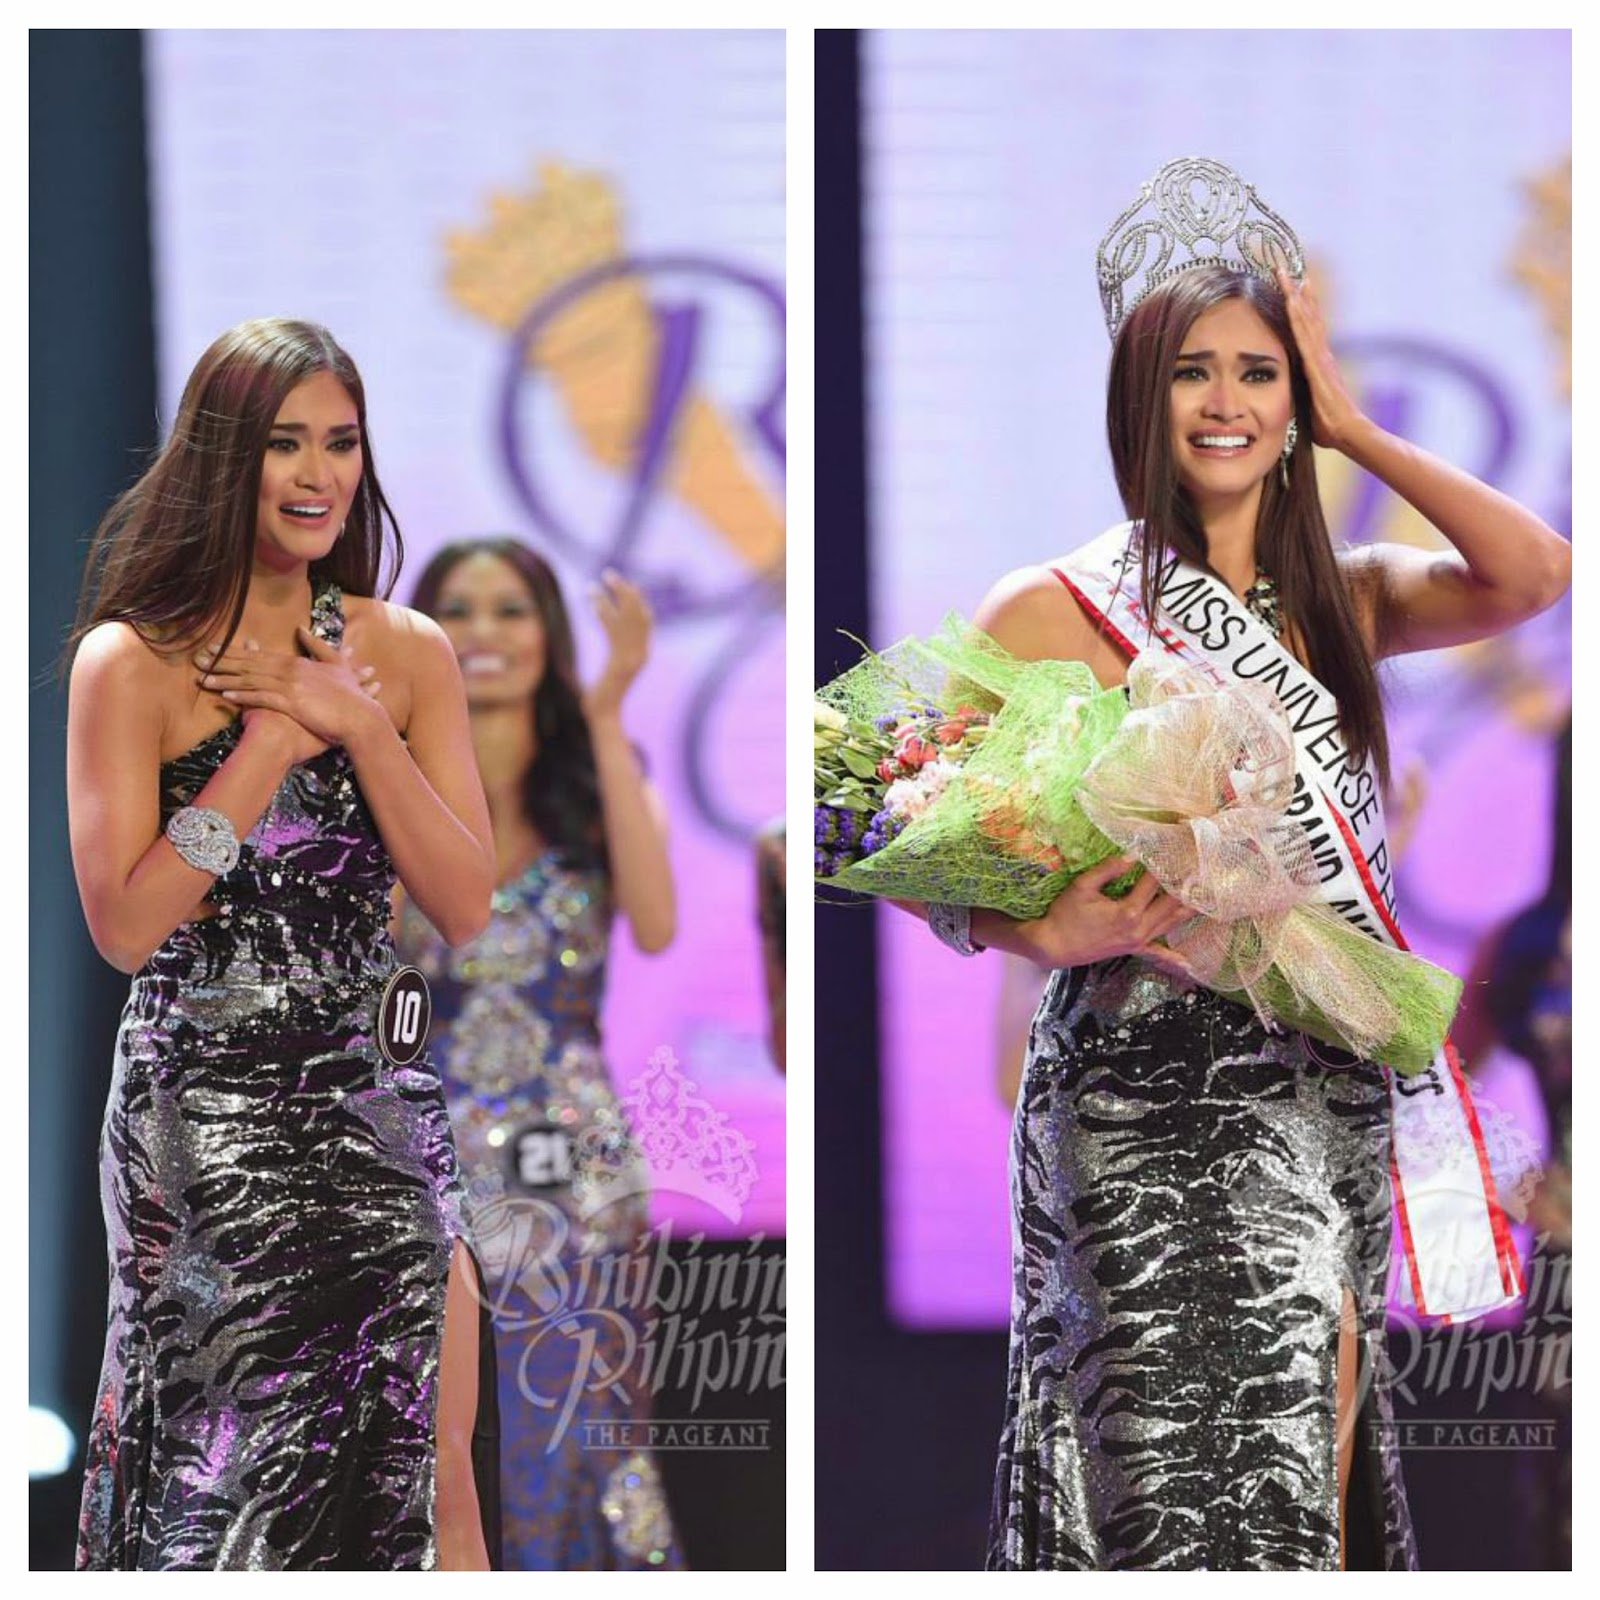 Fashion And Beauty Bb Pilipinas 2015 Candidates Sponsor: Gucci Fashion Trends 2016: SASHES AND TIARAS